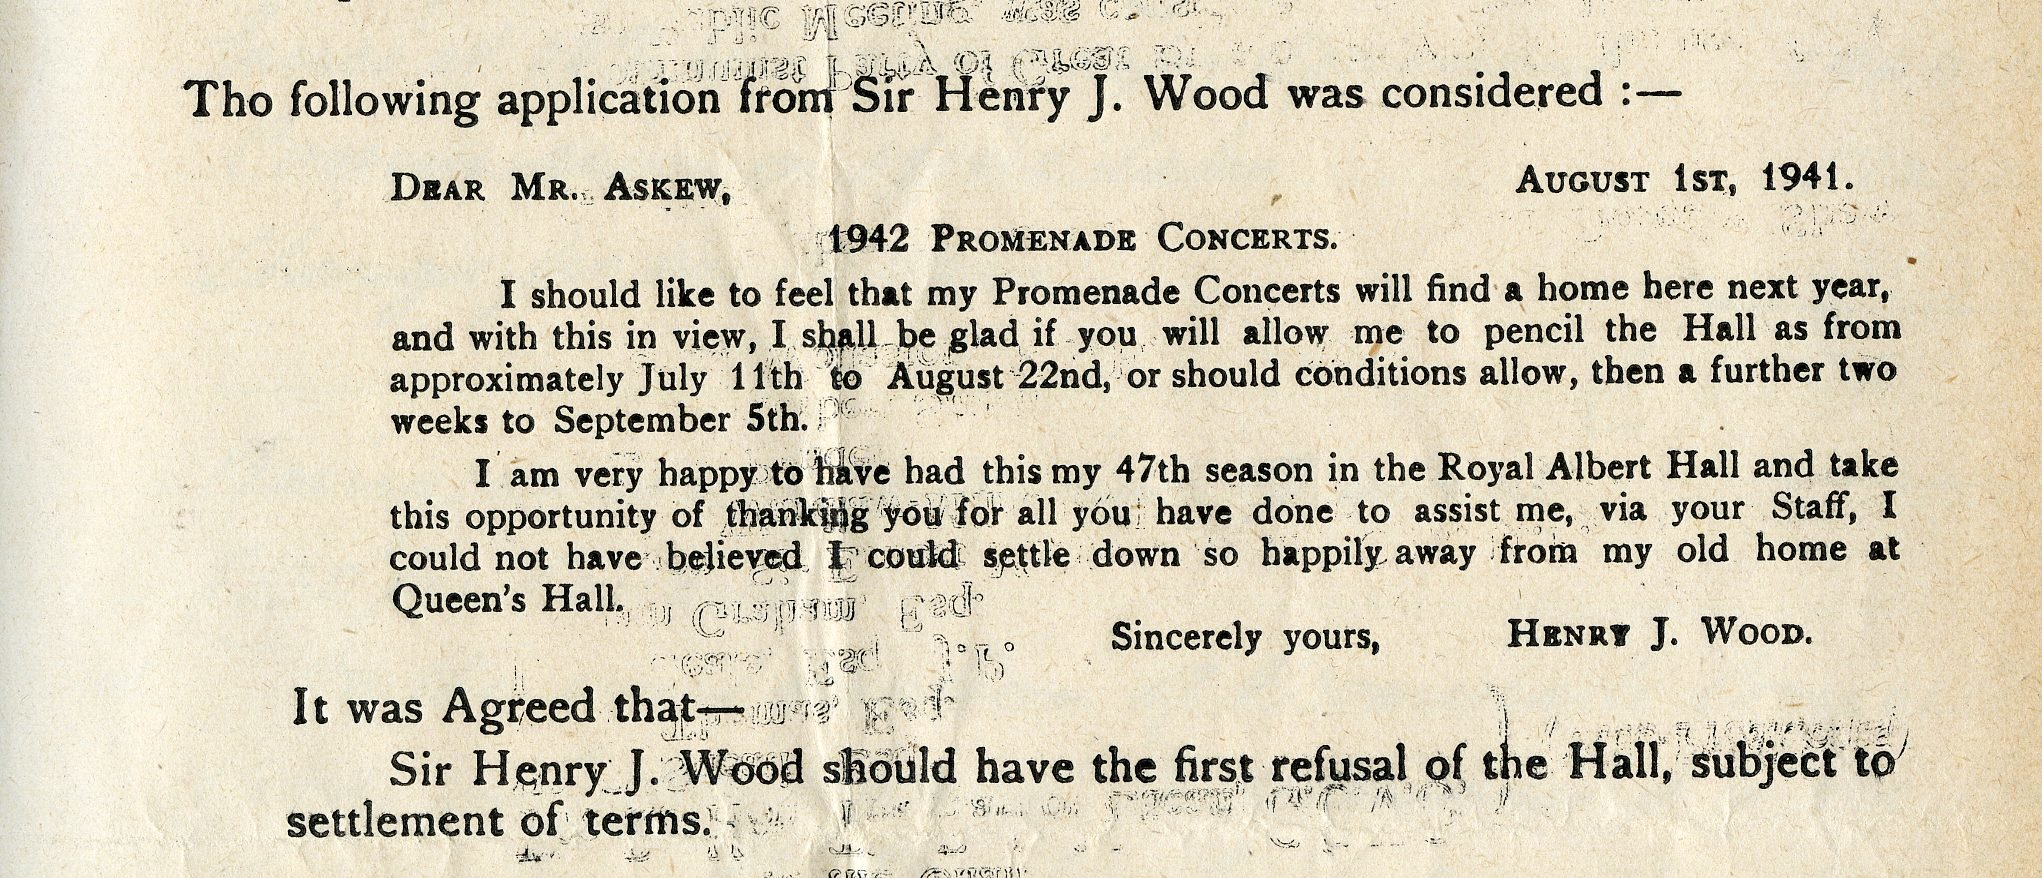 Letter to the Royal Albert Hall from Sir Henry Wood